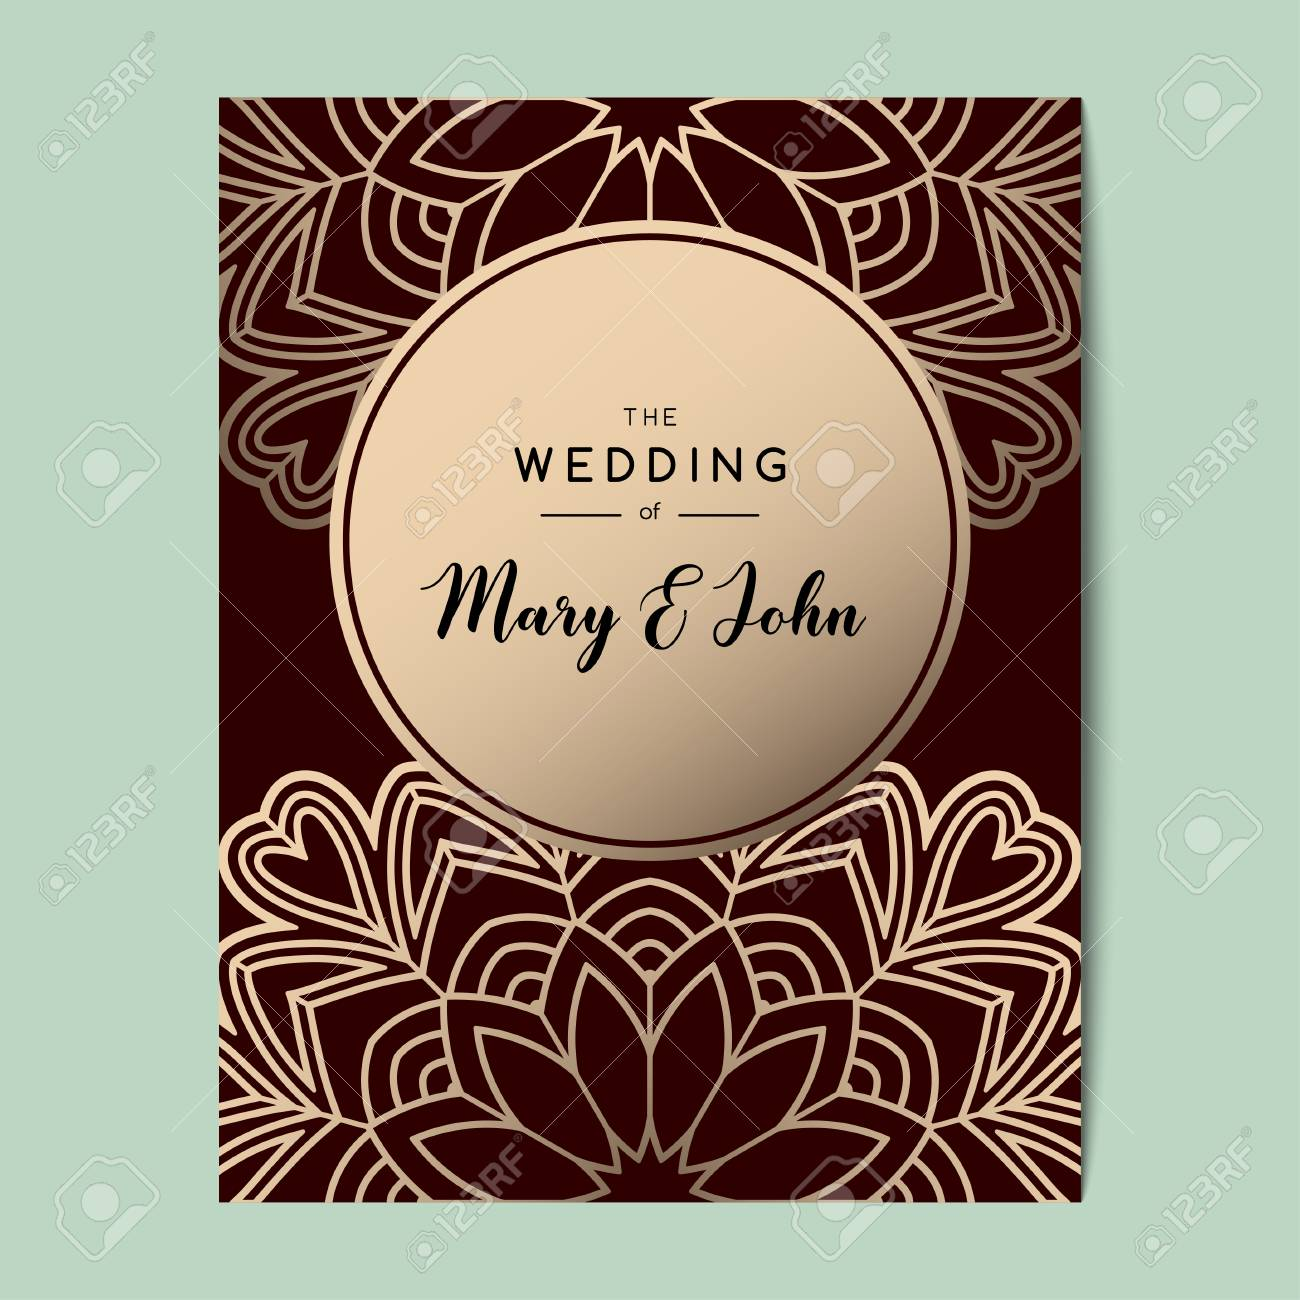 Elegant Wedding Invitation Background Card Design With Floral